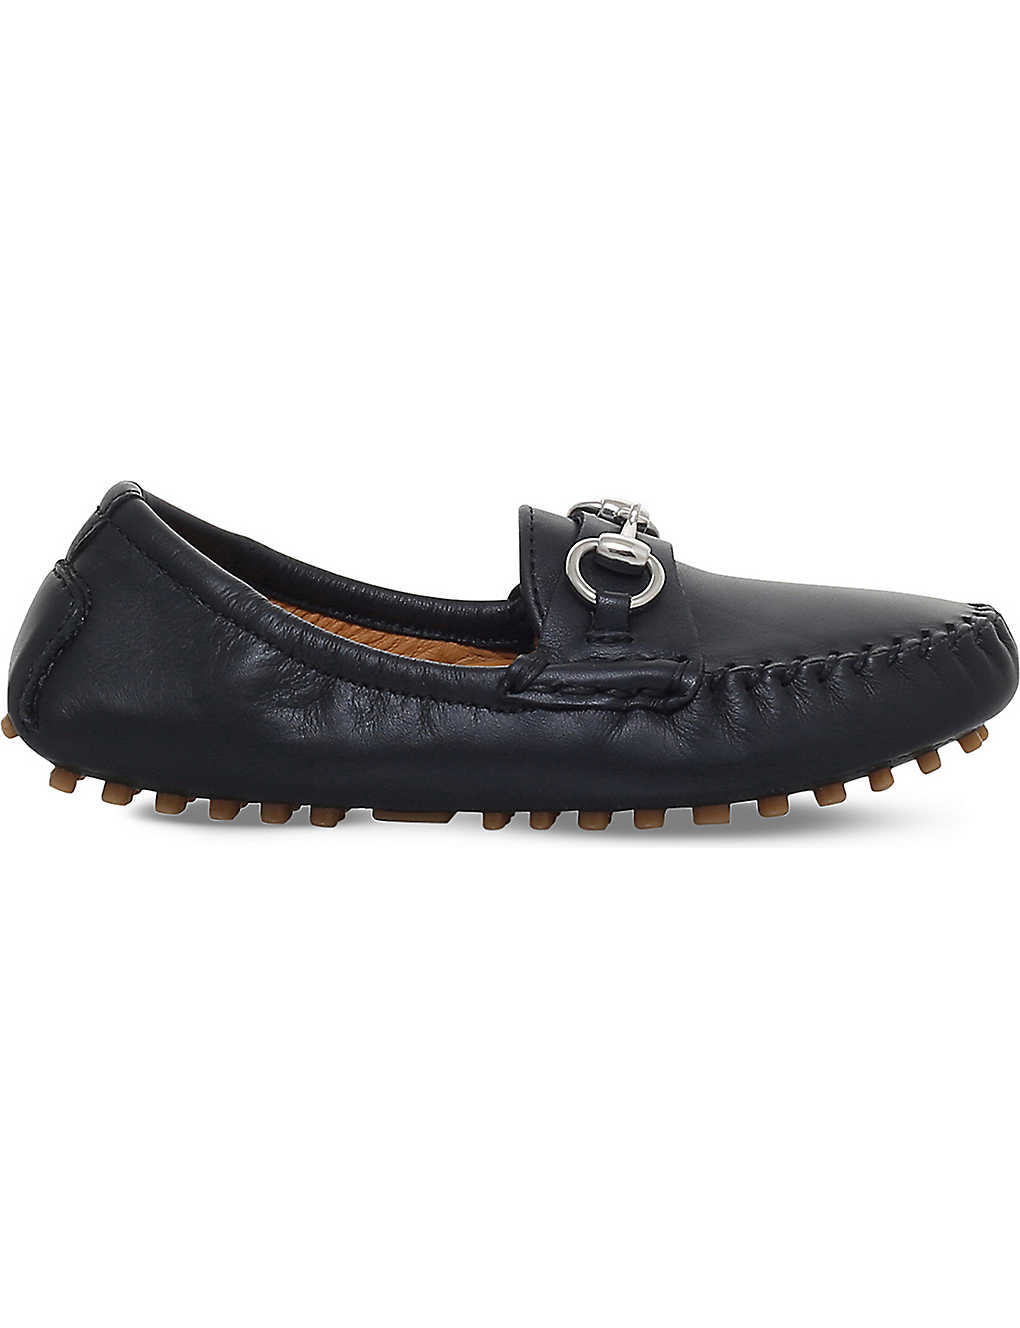 249c9111169 GUCCI - Road leather loafers 3-5 years